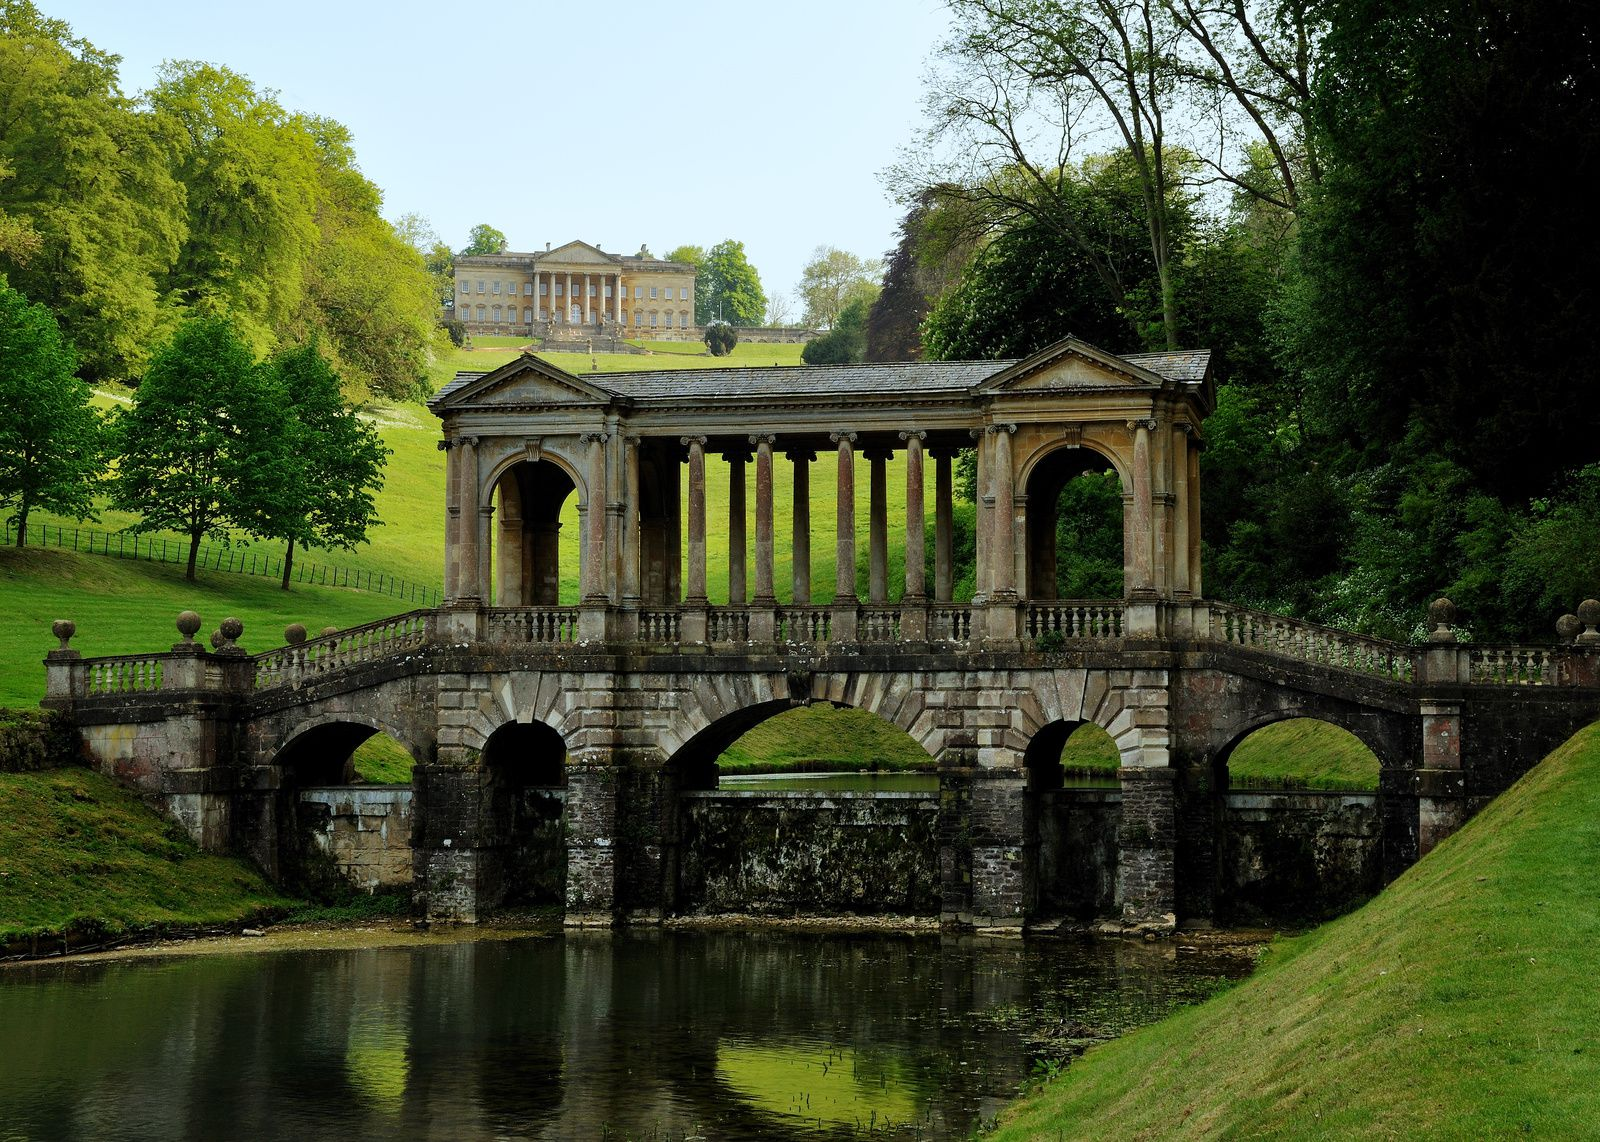 Palladium Bridge, Prior Park, Bath, England - Source: commons.wikimedia.org